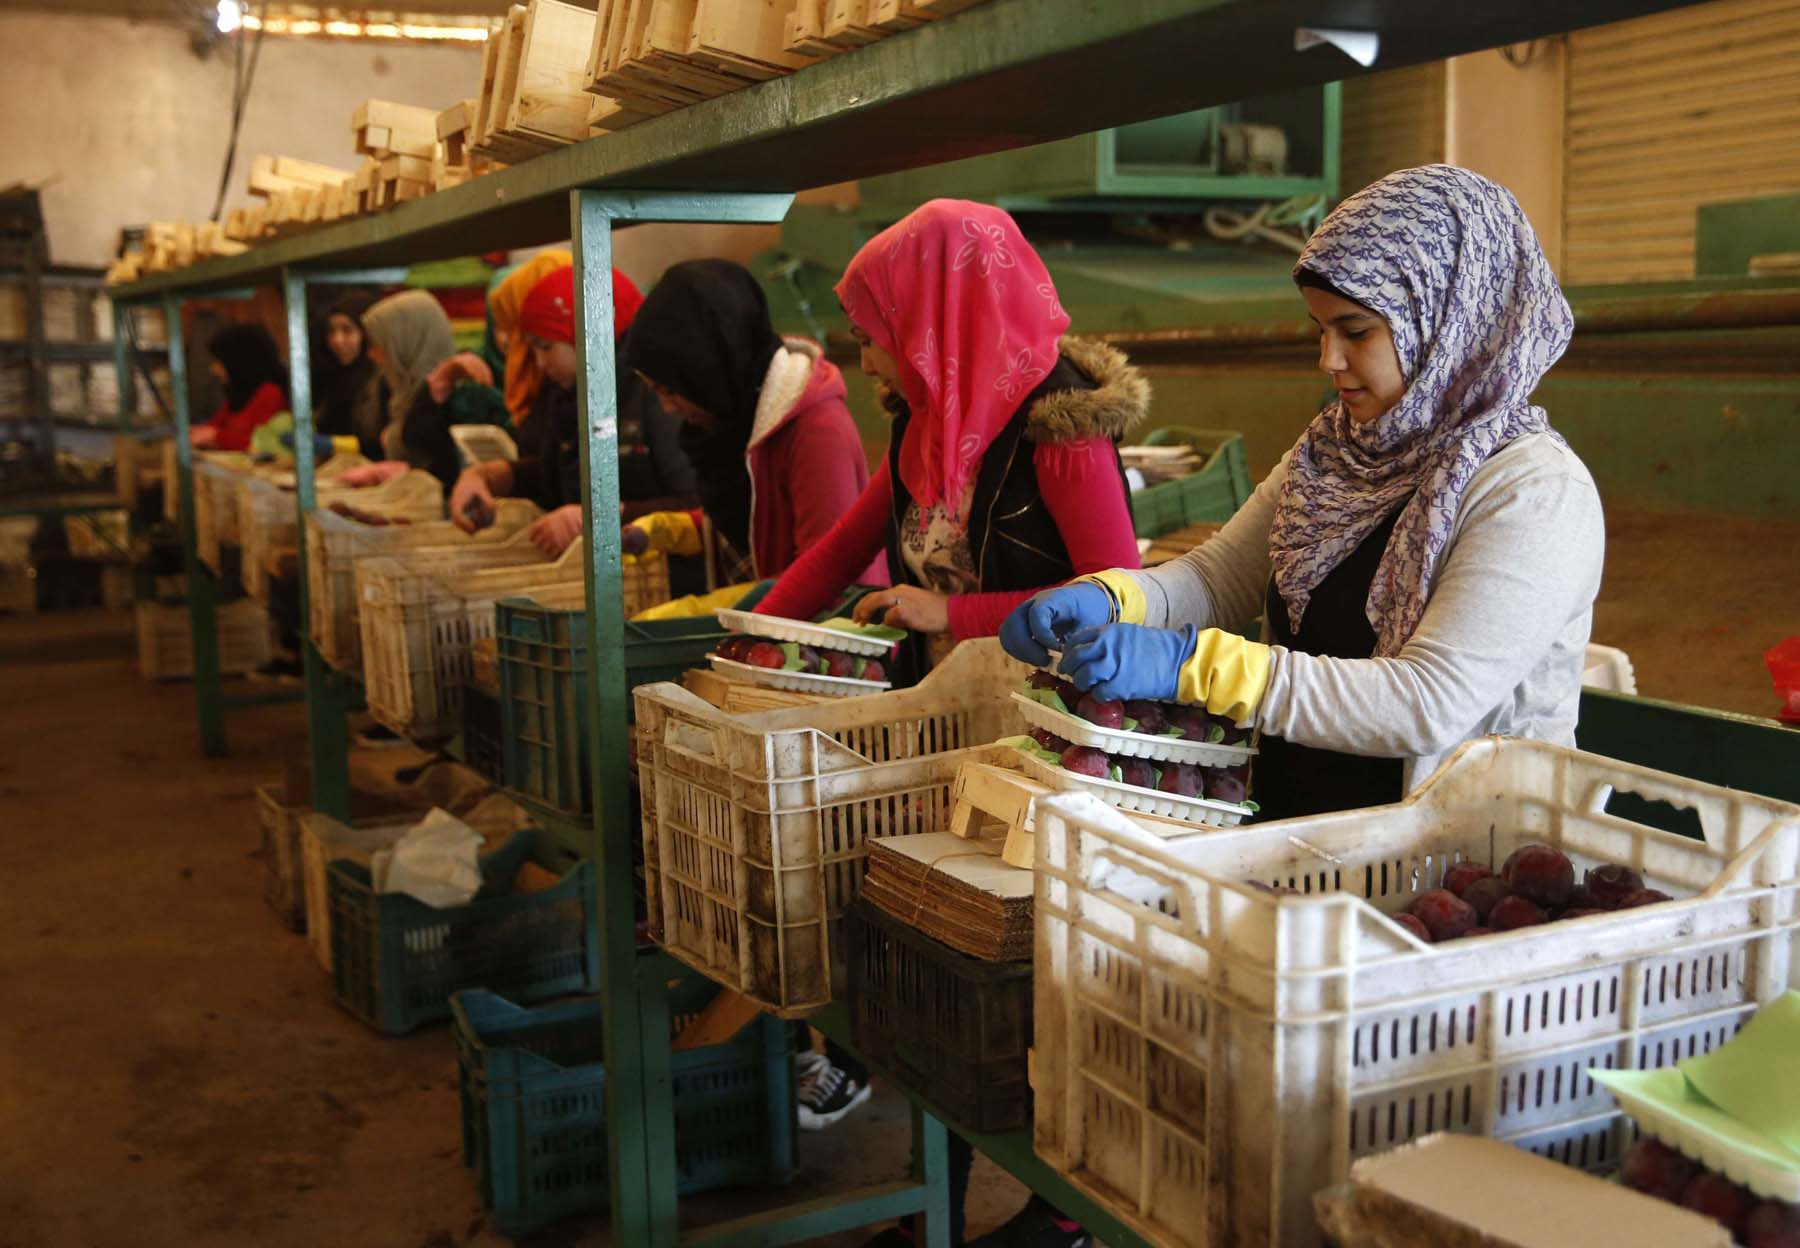 Workers pack fruit for export from Lebanon to the Gulf and other Arab countries, at a warehouse in the Bekaa Valley, Lebanon. (AP)